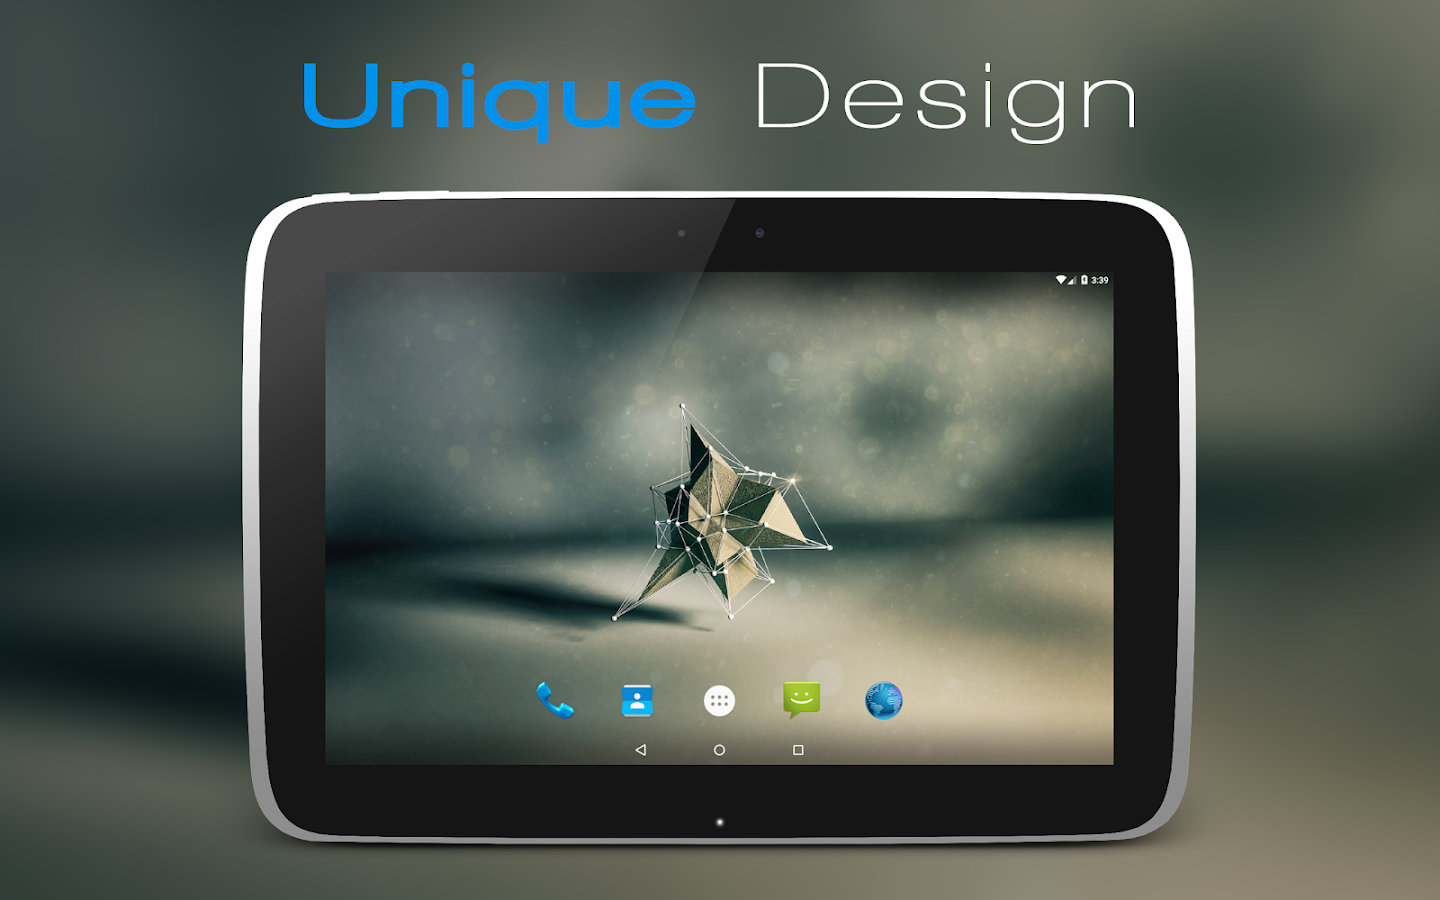 DrewStudio - UHD Wallpapers v1 Screenshot 4